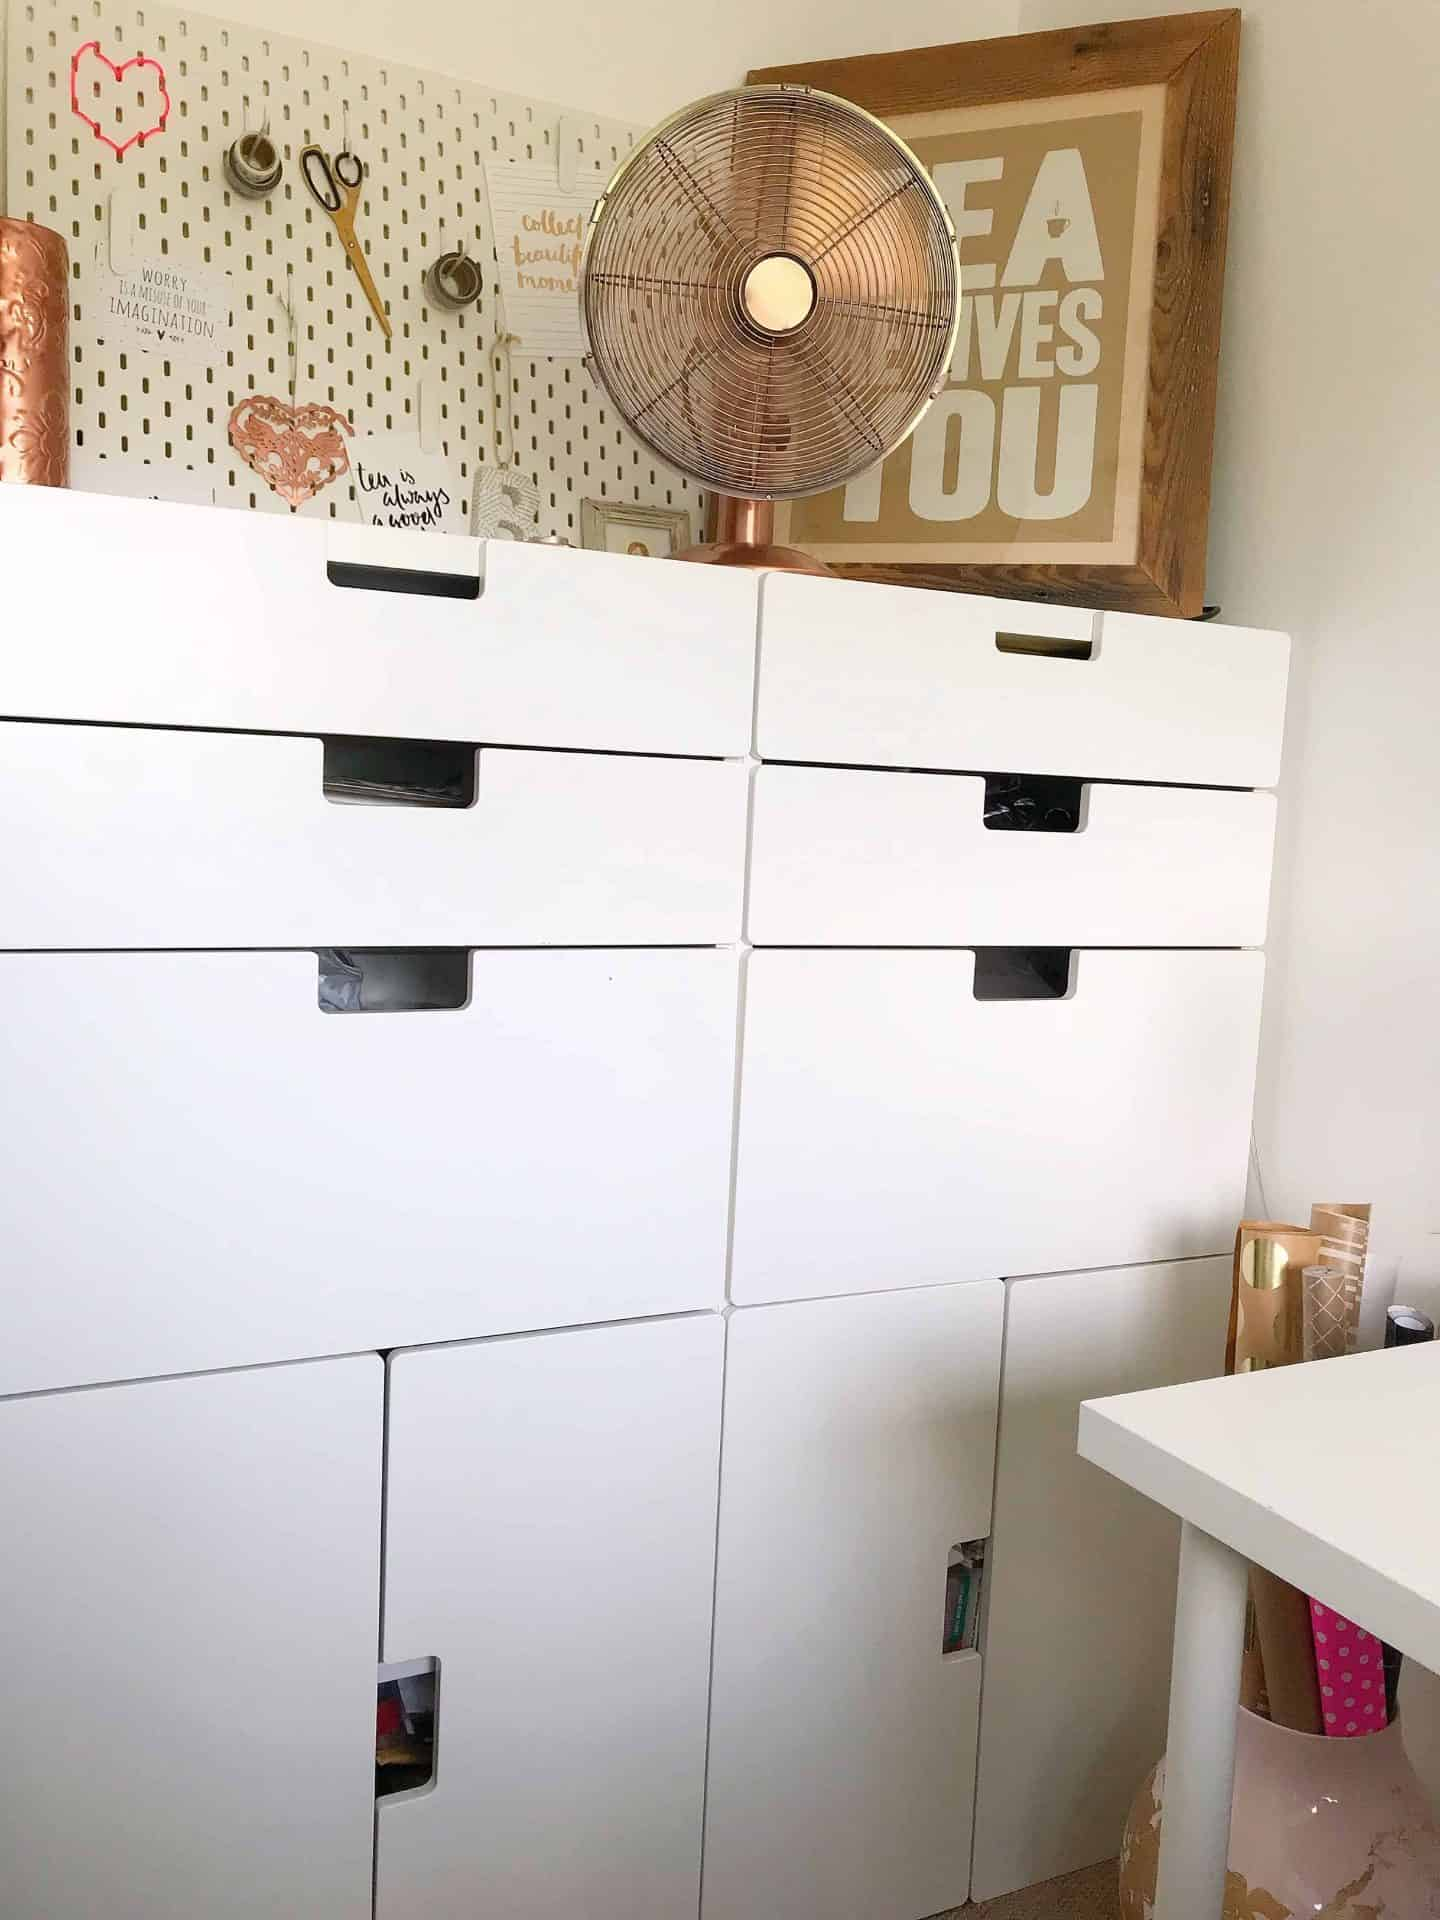 White IKEA storage cupboards with desk fan and peg board